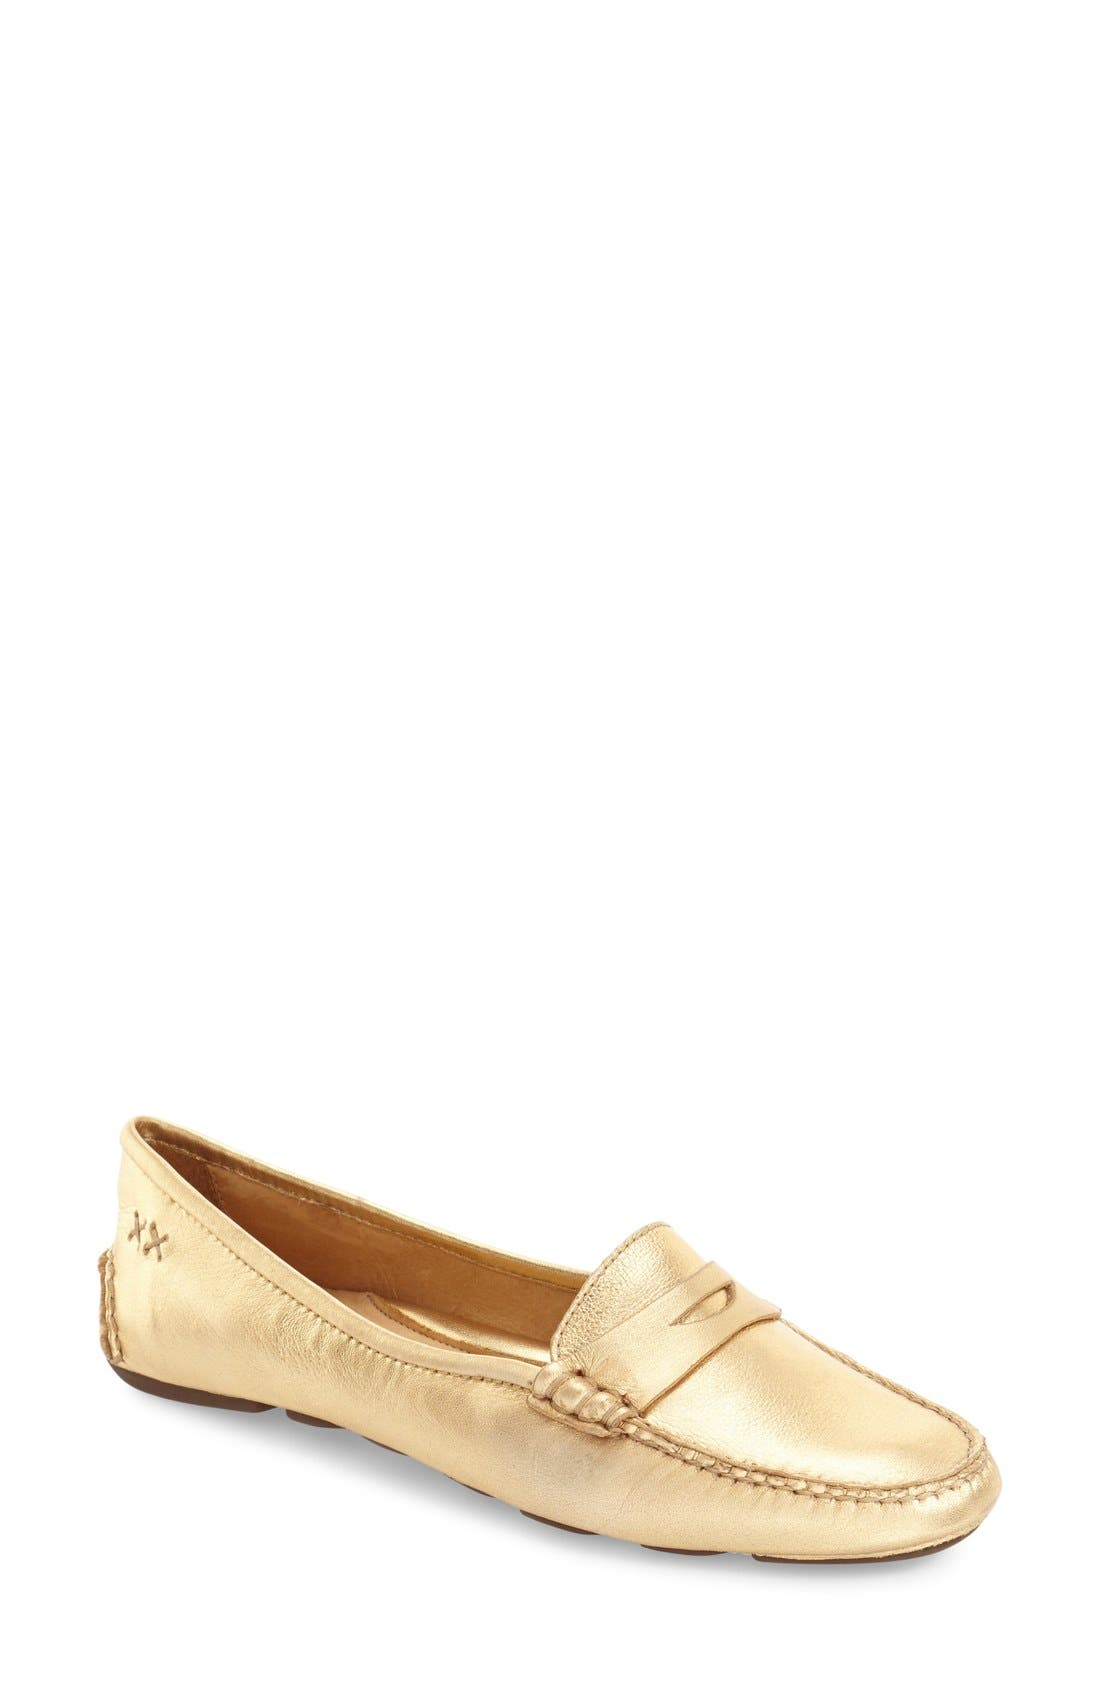 Main Image - patricia green 'Bristol' Penny Loafer (Women)